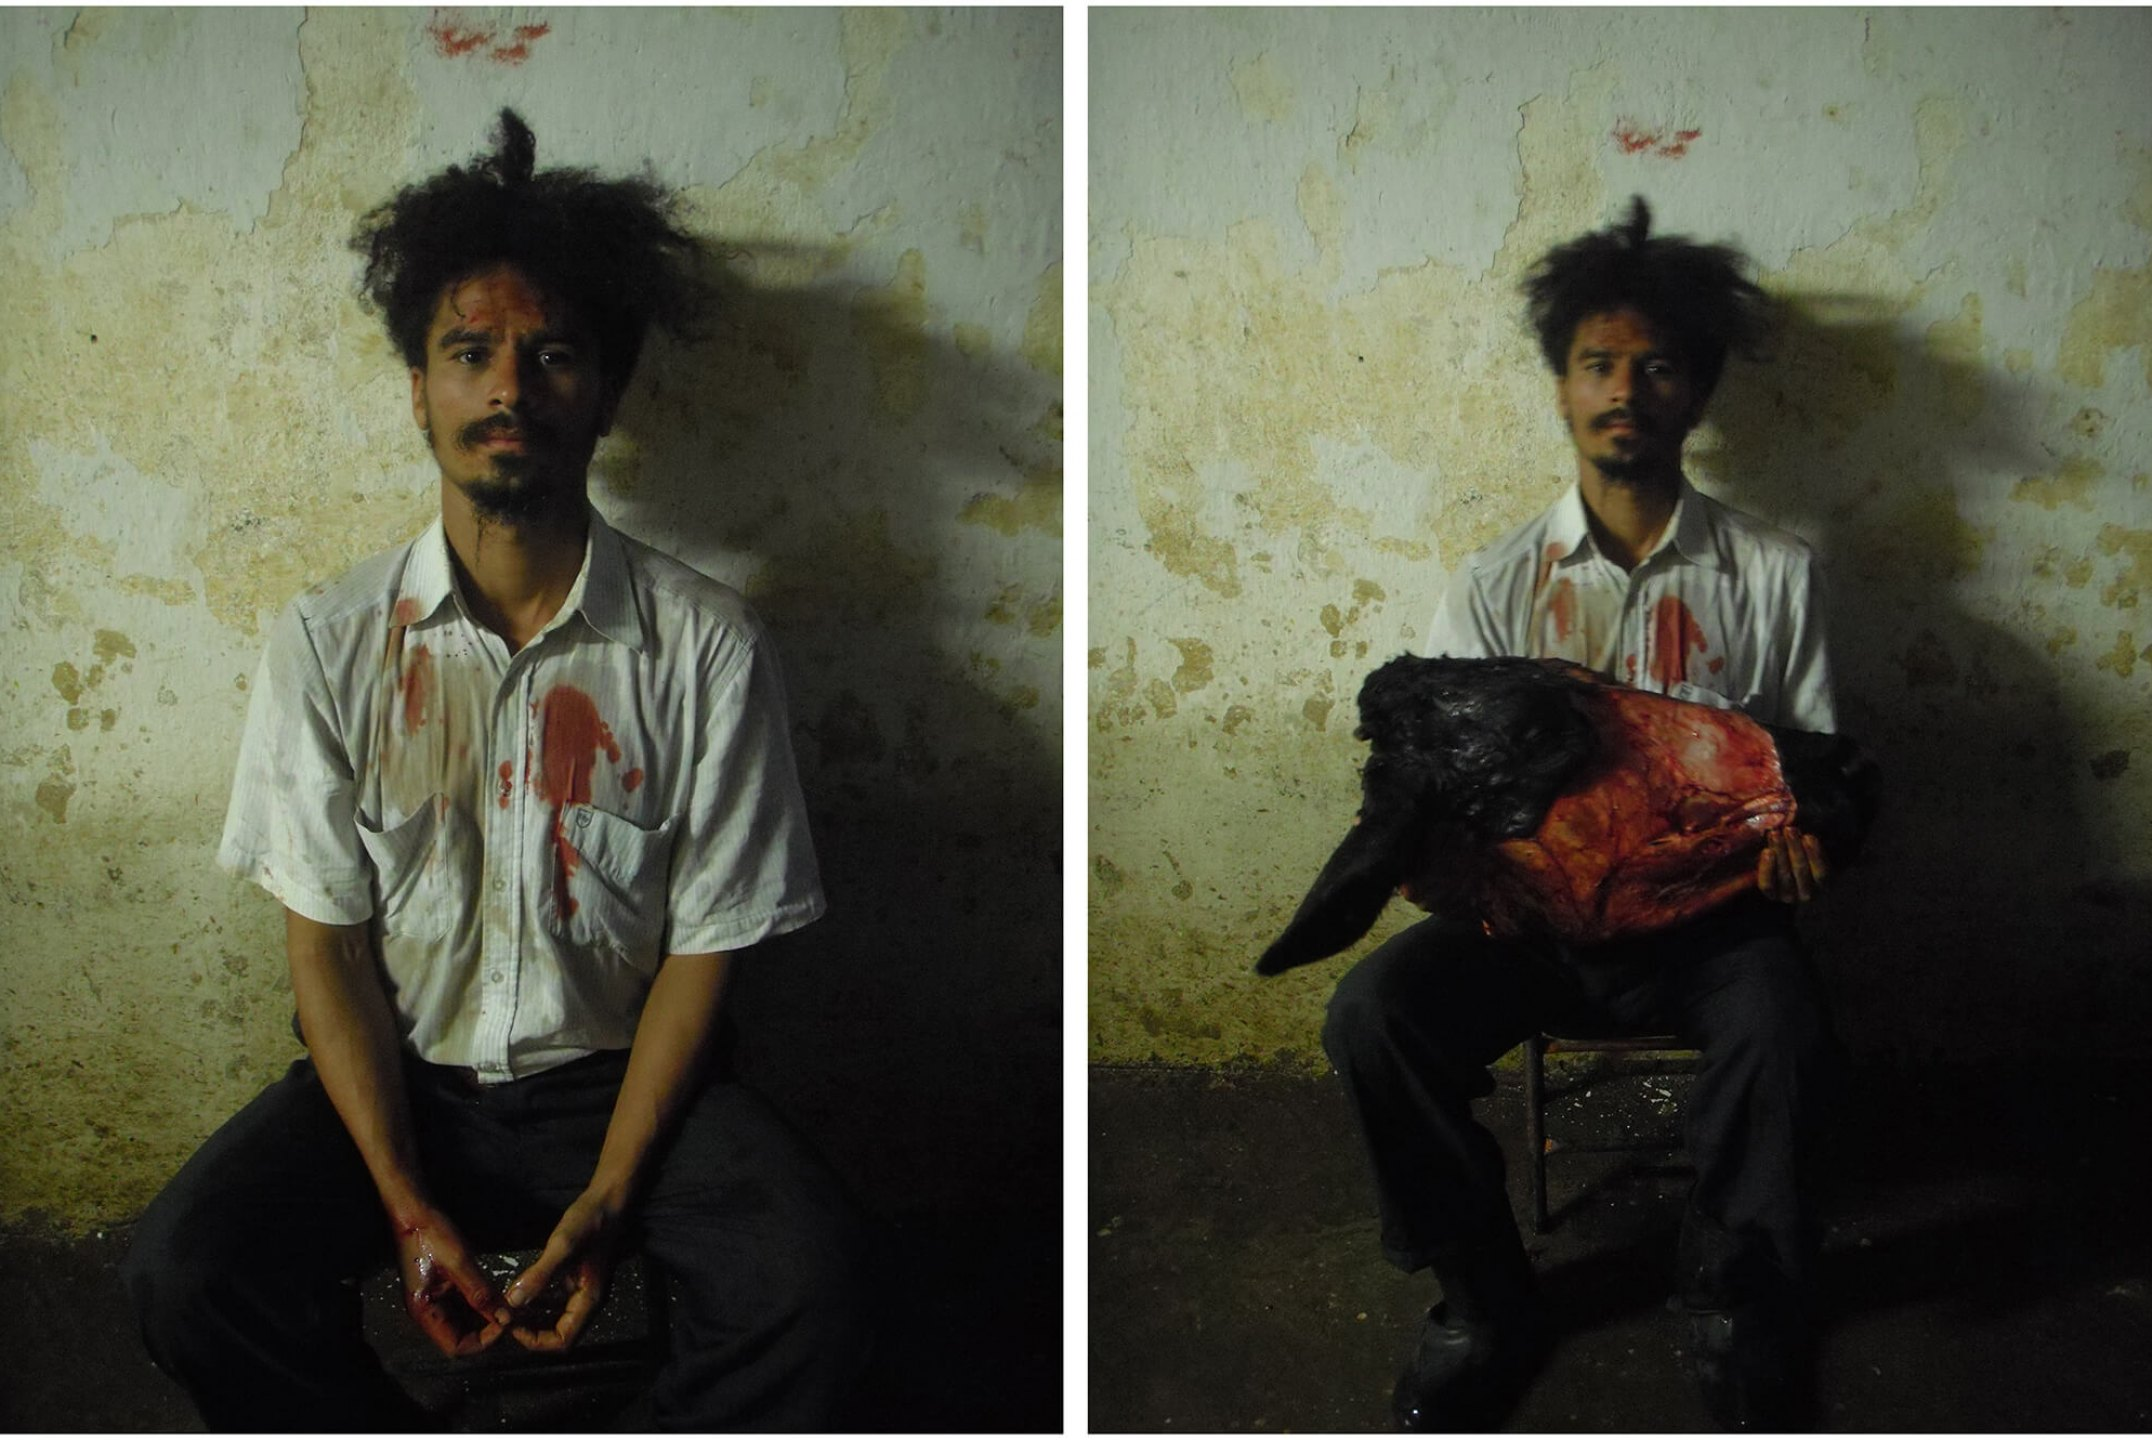 Paulo Nazareth, <em>untitled</em>, 2010, photo printing on cotton paper, 24 × 18 cm (each) - Mendes Wood DM